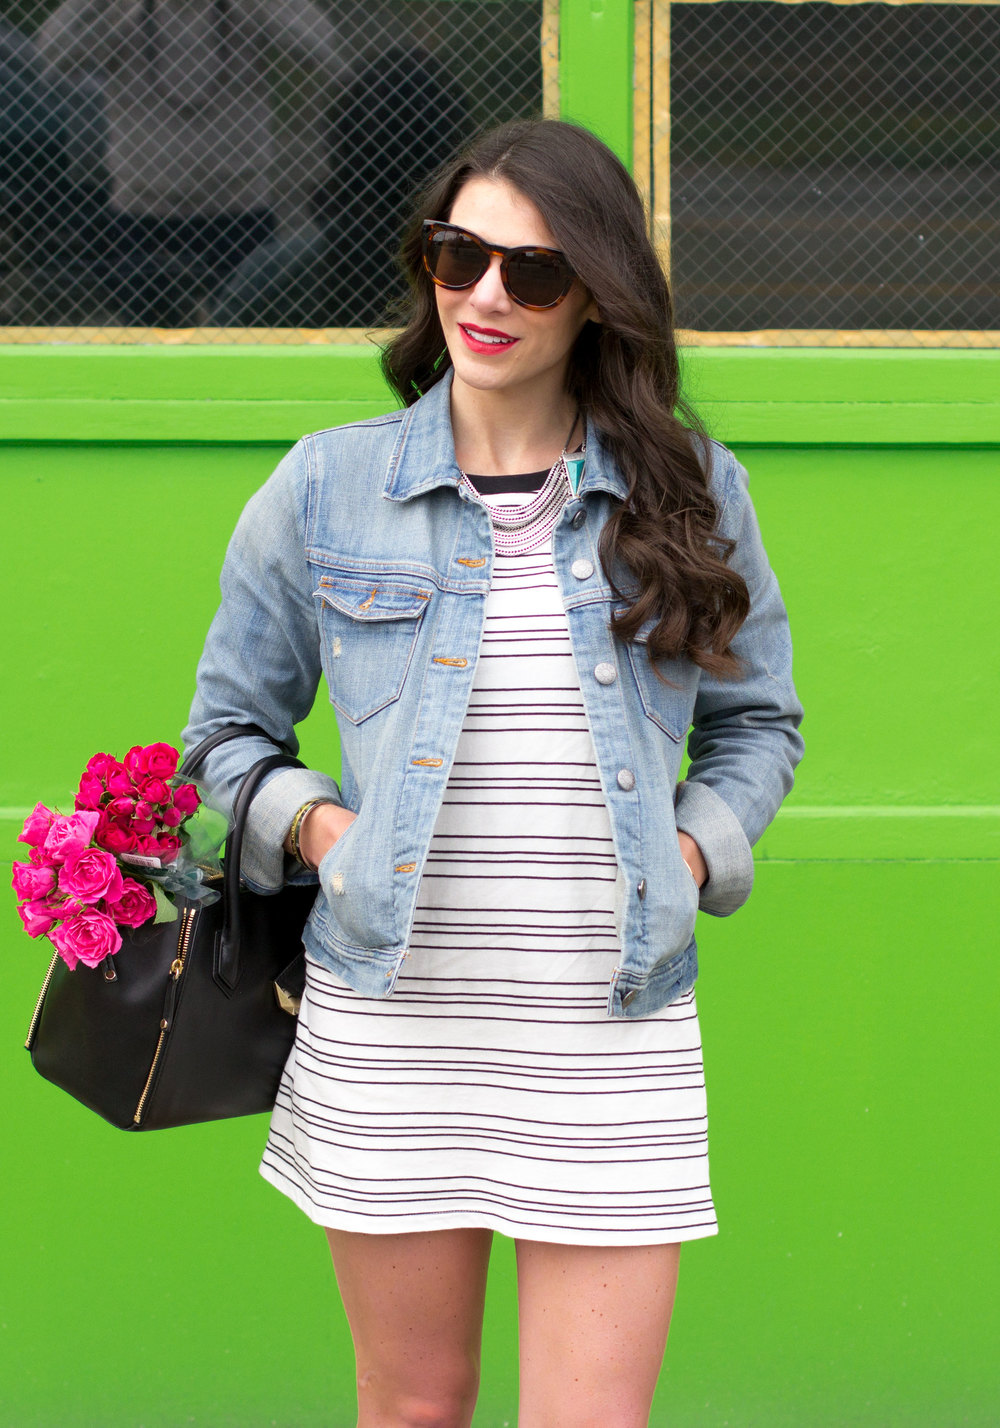 Stripe T-shirt dress outfits for summer, Dress with Adidas Originals Sneakers, Rebecca Minkoff Mini Perry Satchell